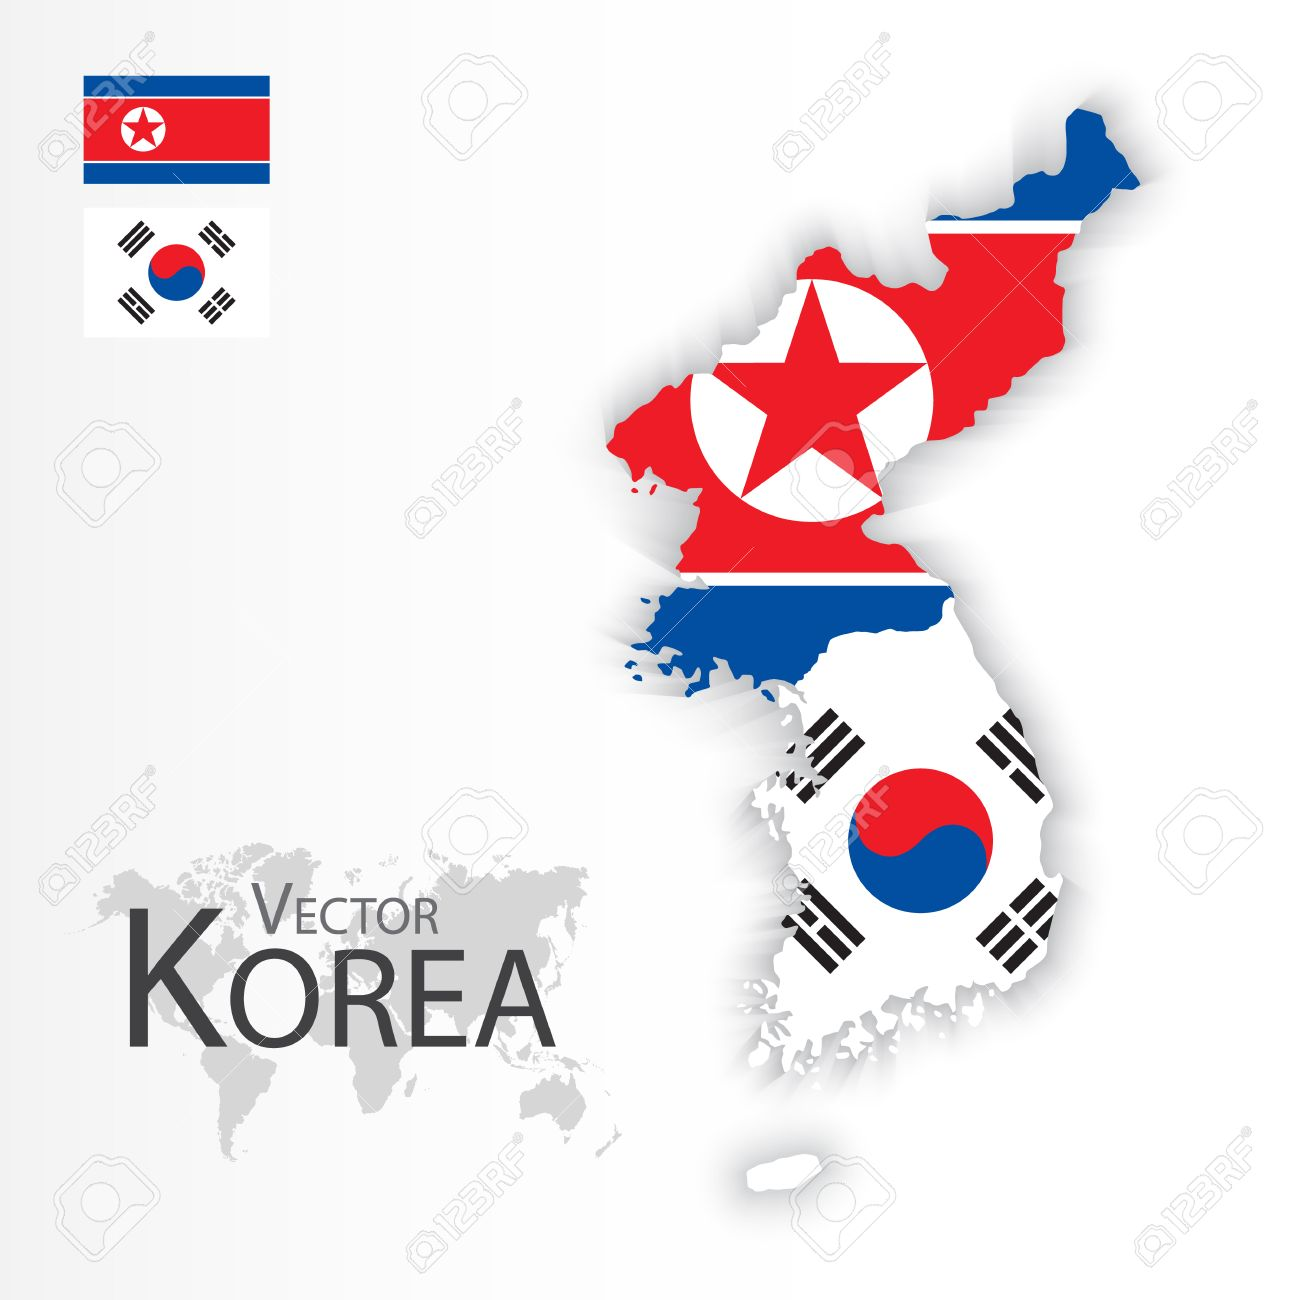 Grenze Nordkorea Südkorea Karte.Stock Photo